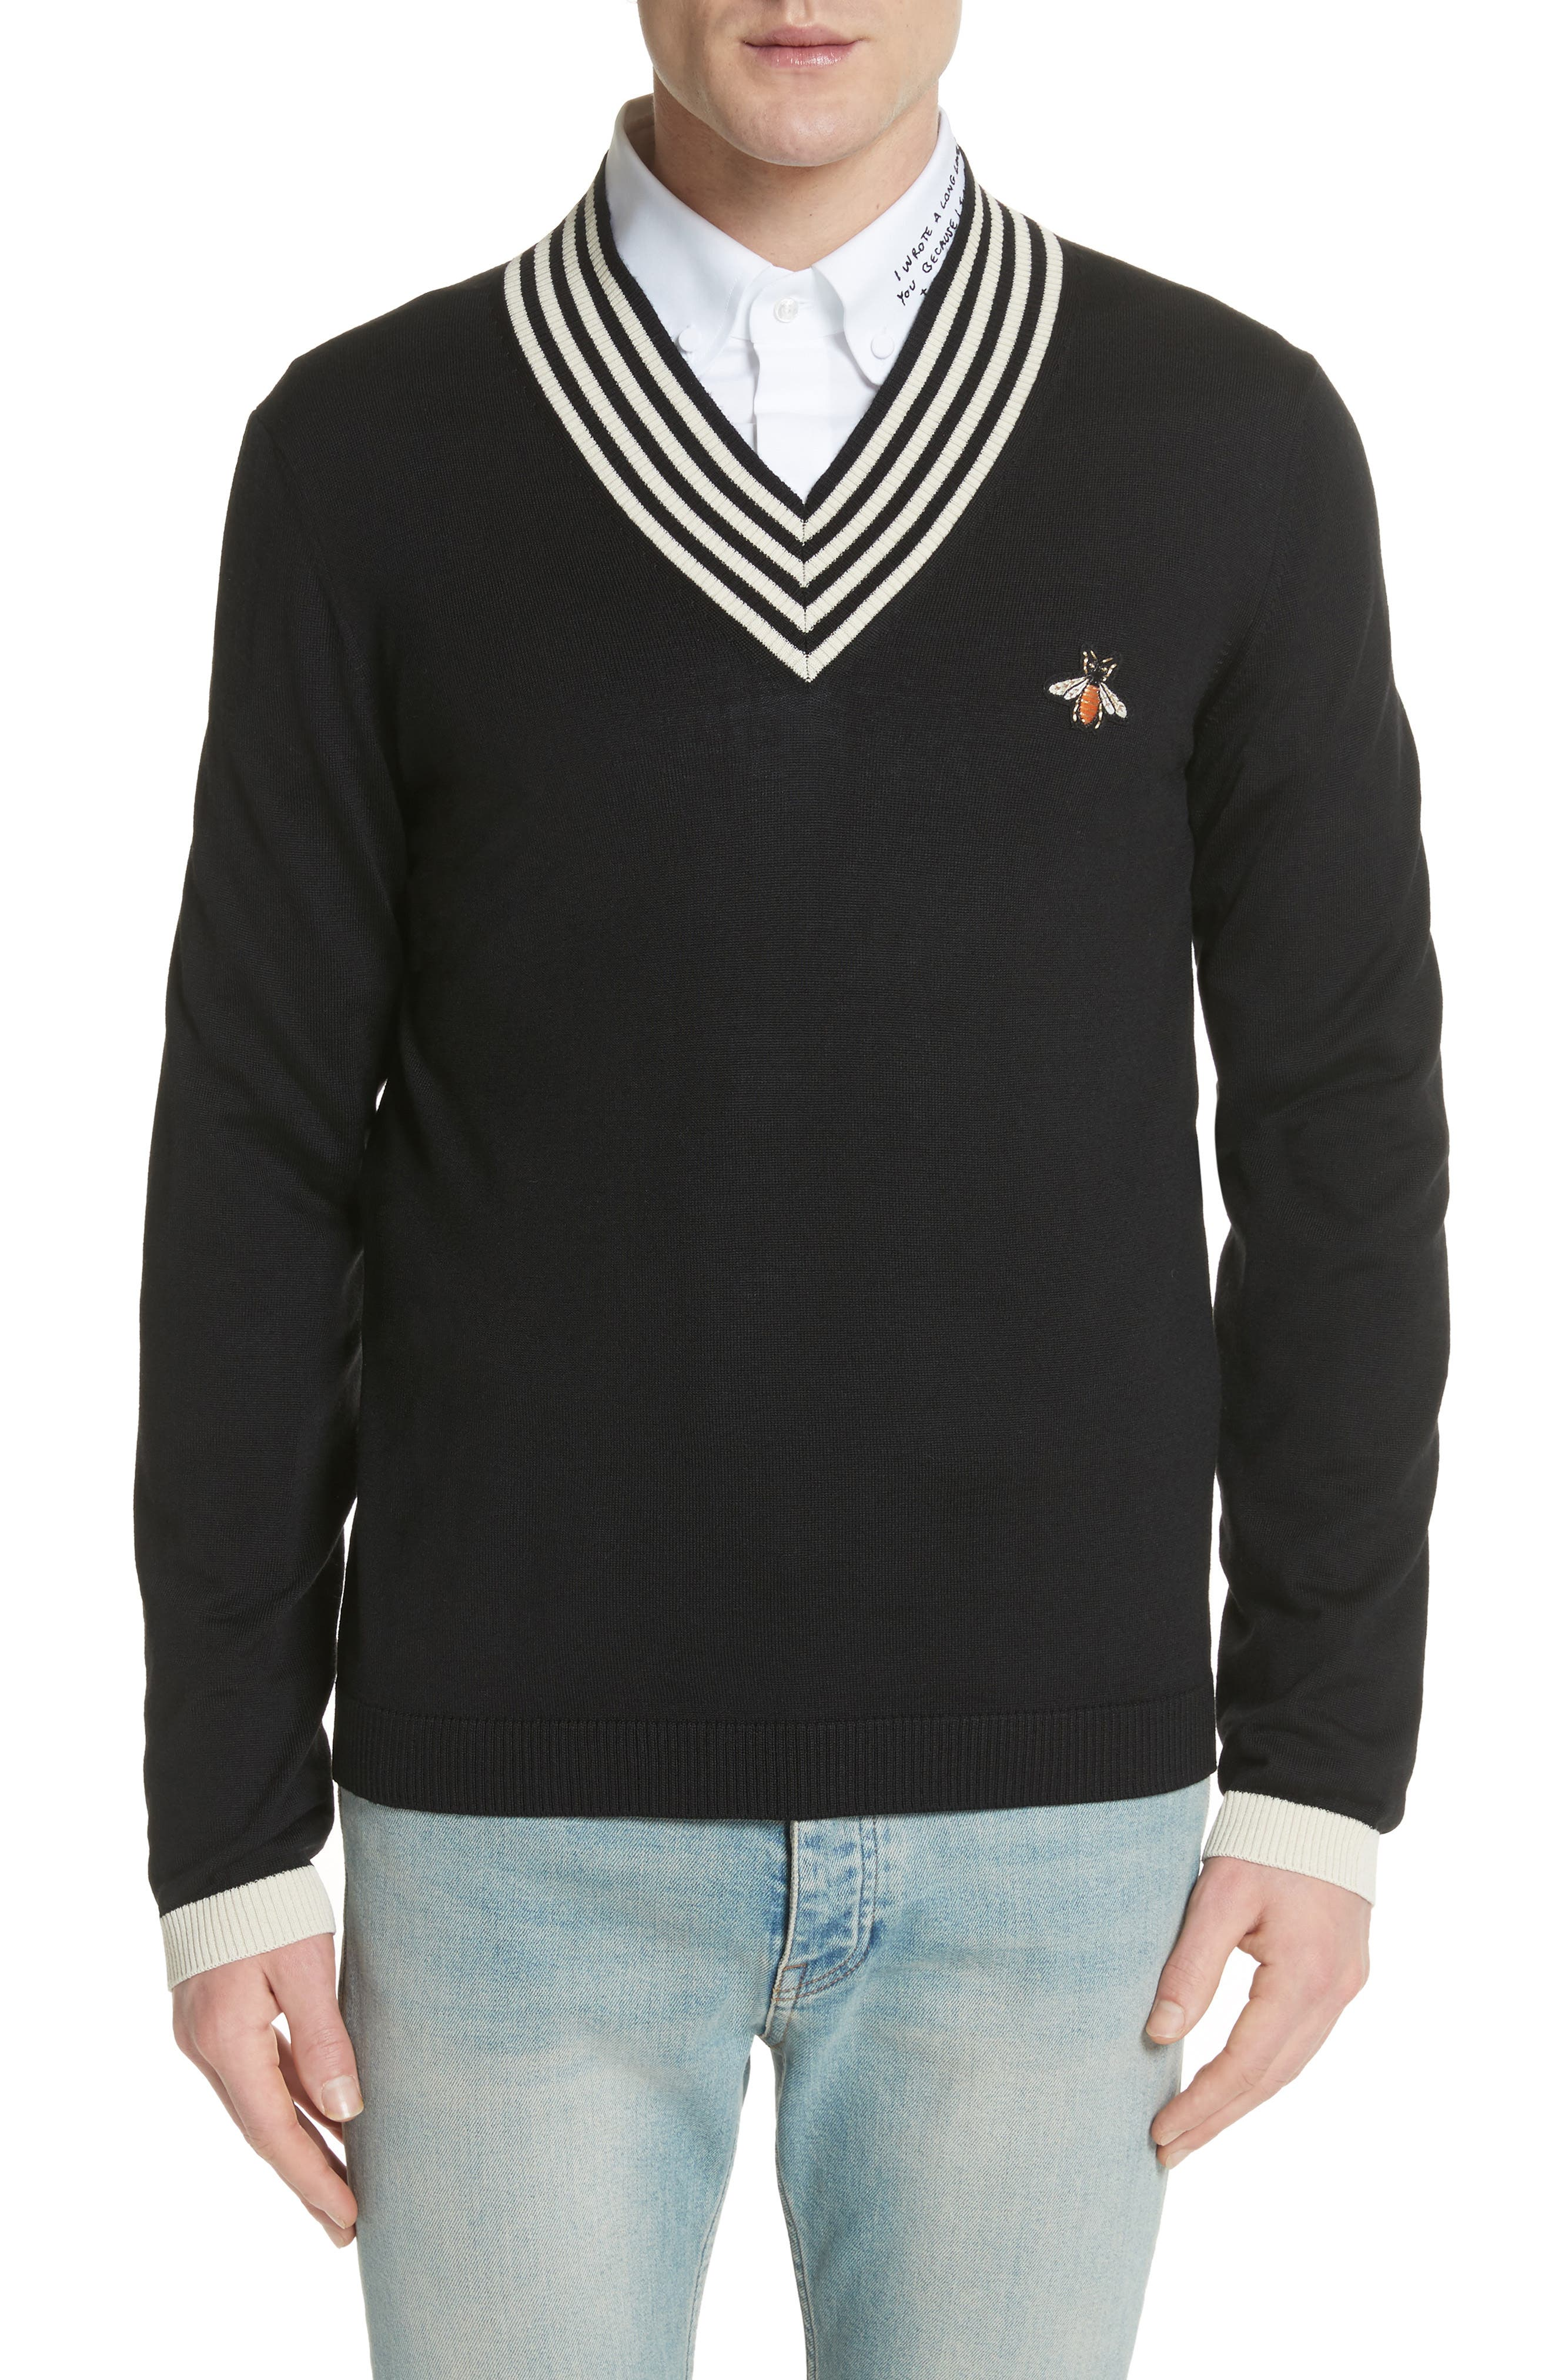 Bee Appliqué Wool Pullover Sweater,                             Main thumbnail 1, color,                             1831 Black